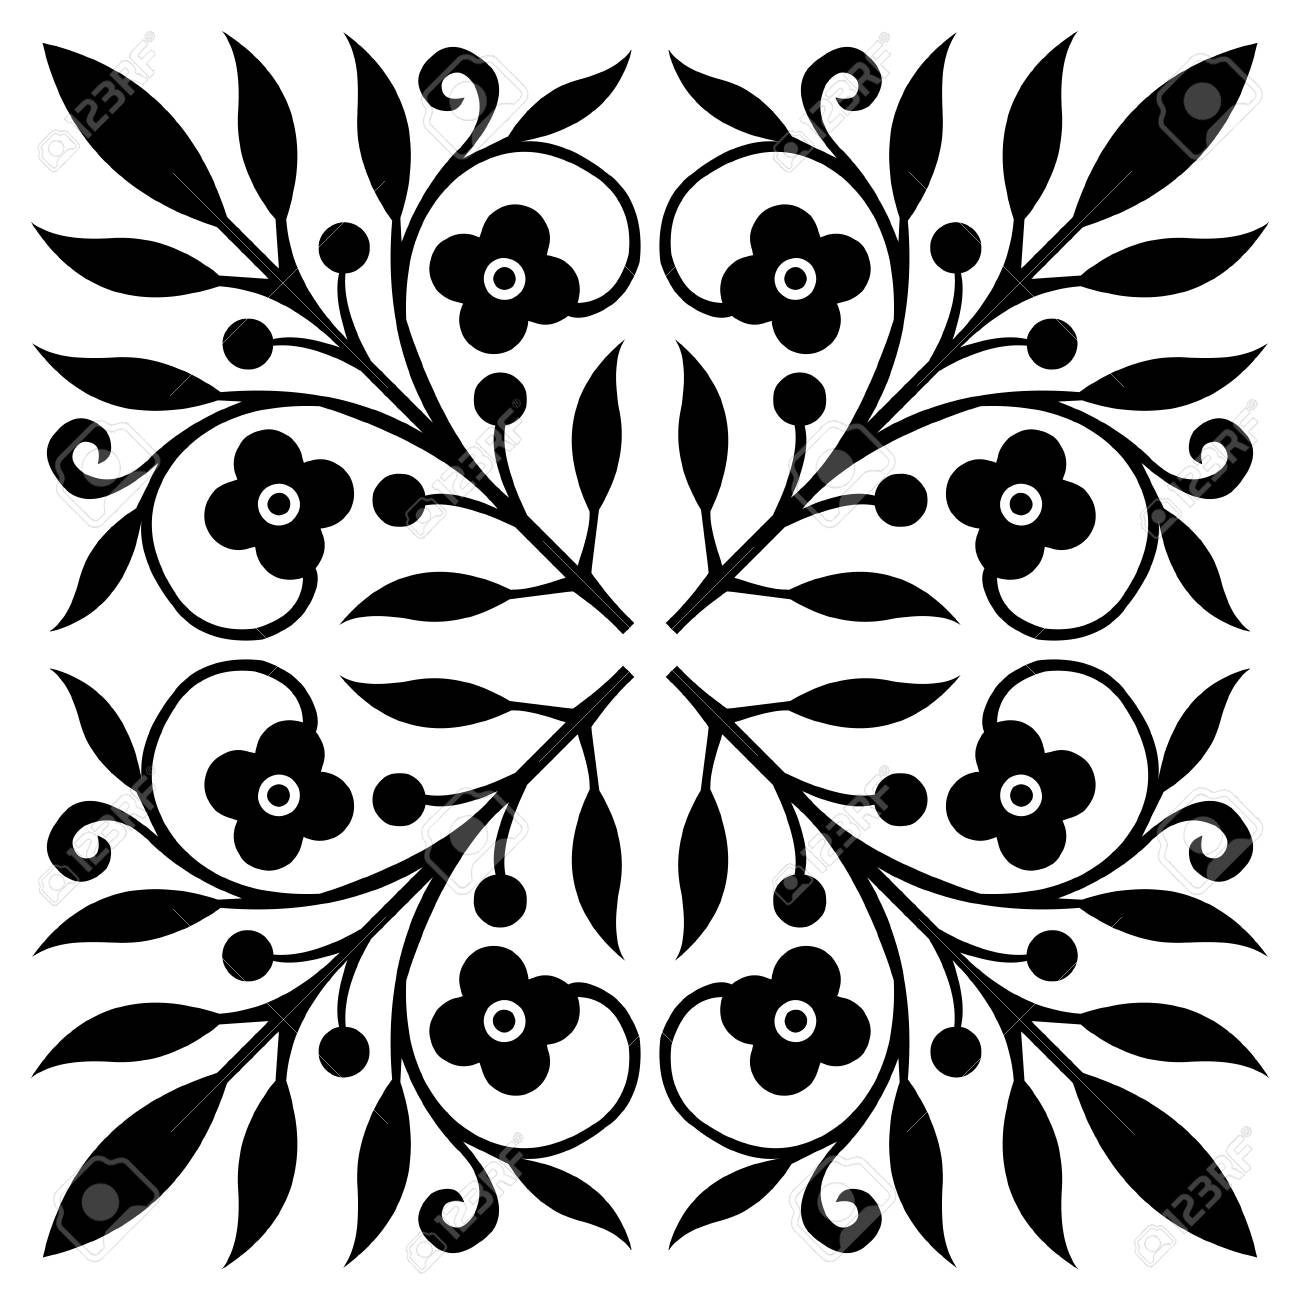 Floral Pattern Royalty Free Cliparts, Vectors, And Stock ...